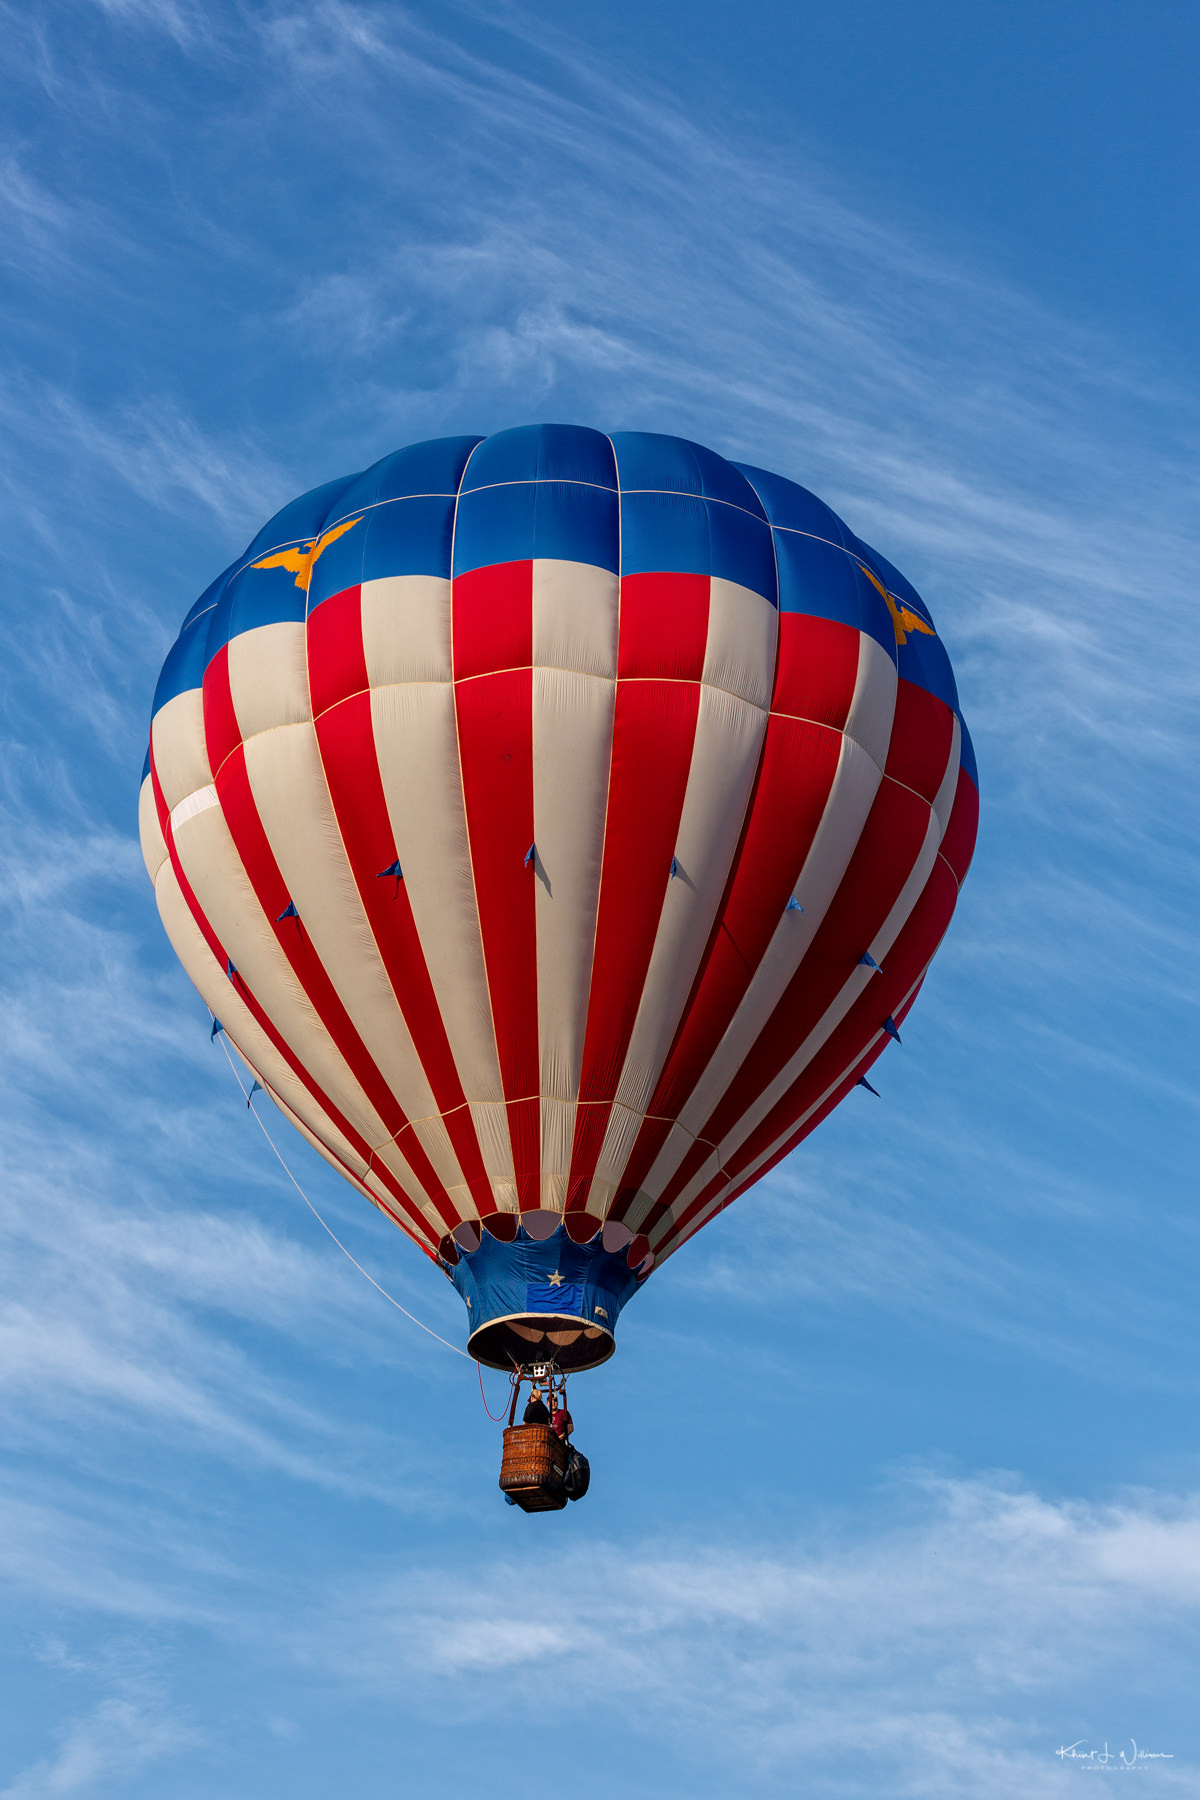 QuickChek Festival of Ballooning pre festival Media Launch QuickChek Festival of Ballooning Media Launch Canon EOS 5D Mark III 20180727 7027 Edit blog